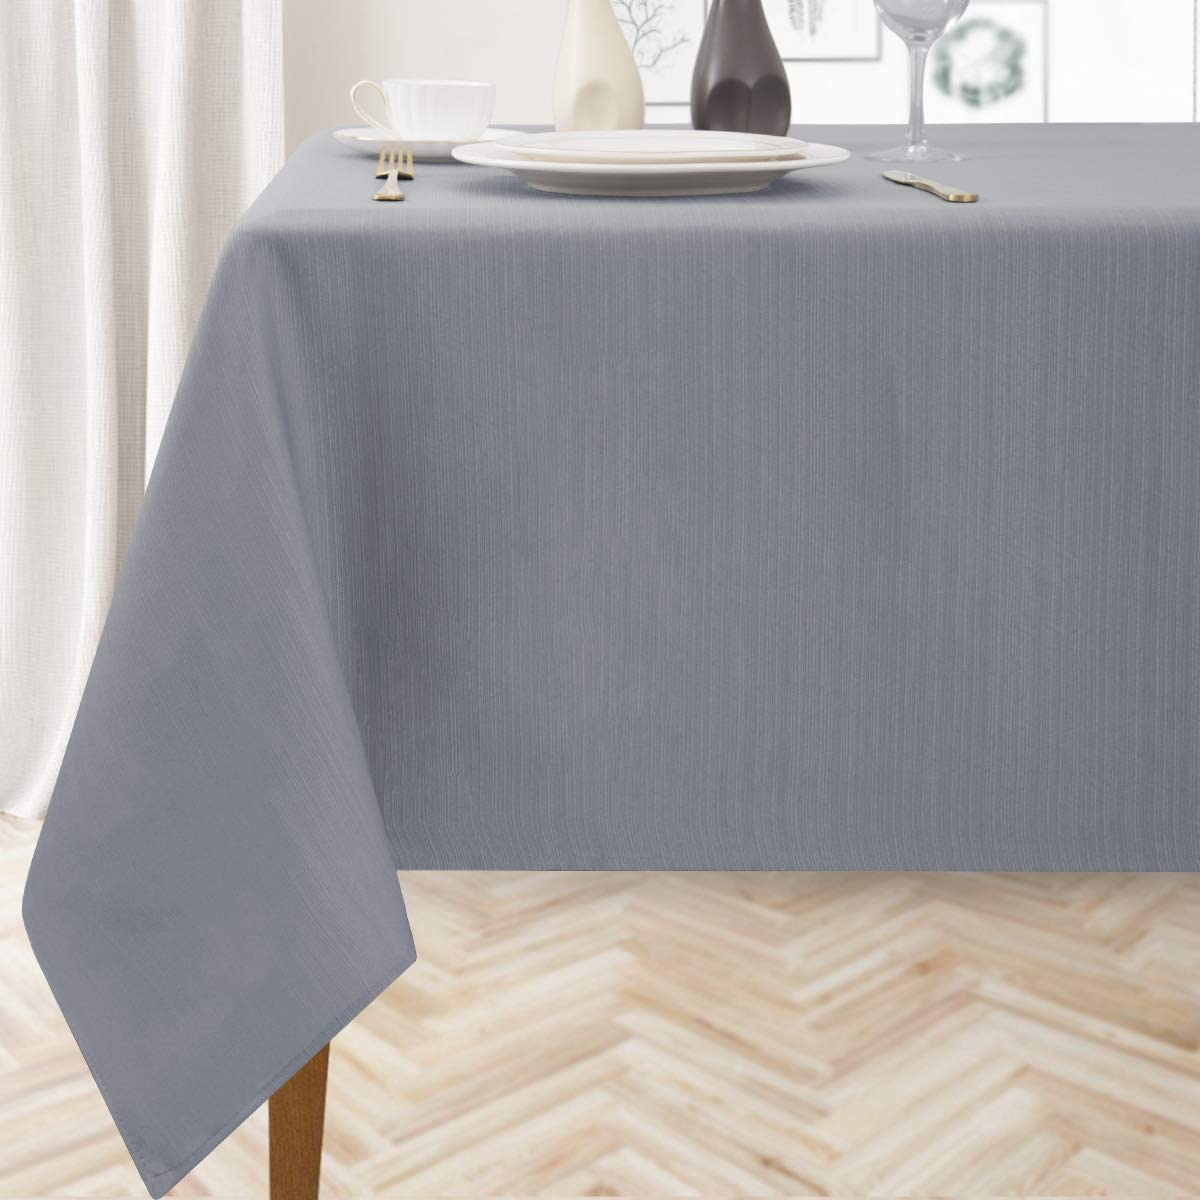 Stripe Textured Tablecloths for Rectangle Table Modern Style Water Resistant Spill-Proof Washable Table Cloth Chic Tabletop Cover for Kitchen Dining Holiday Table Decor Light Grey 60×84, Seats of 6-8